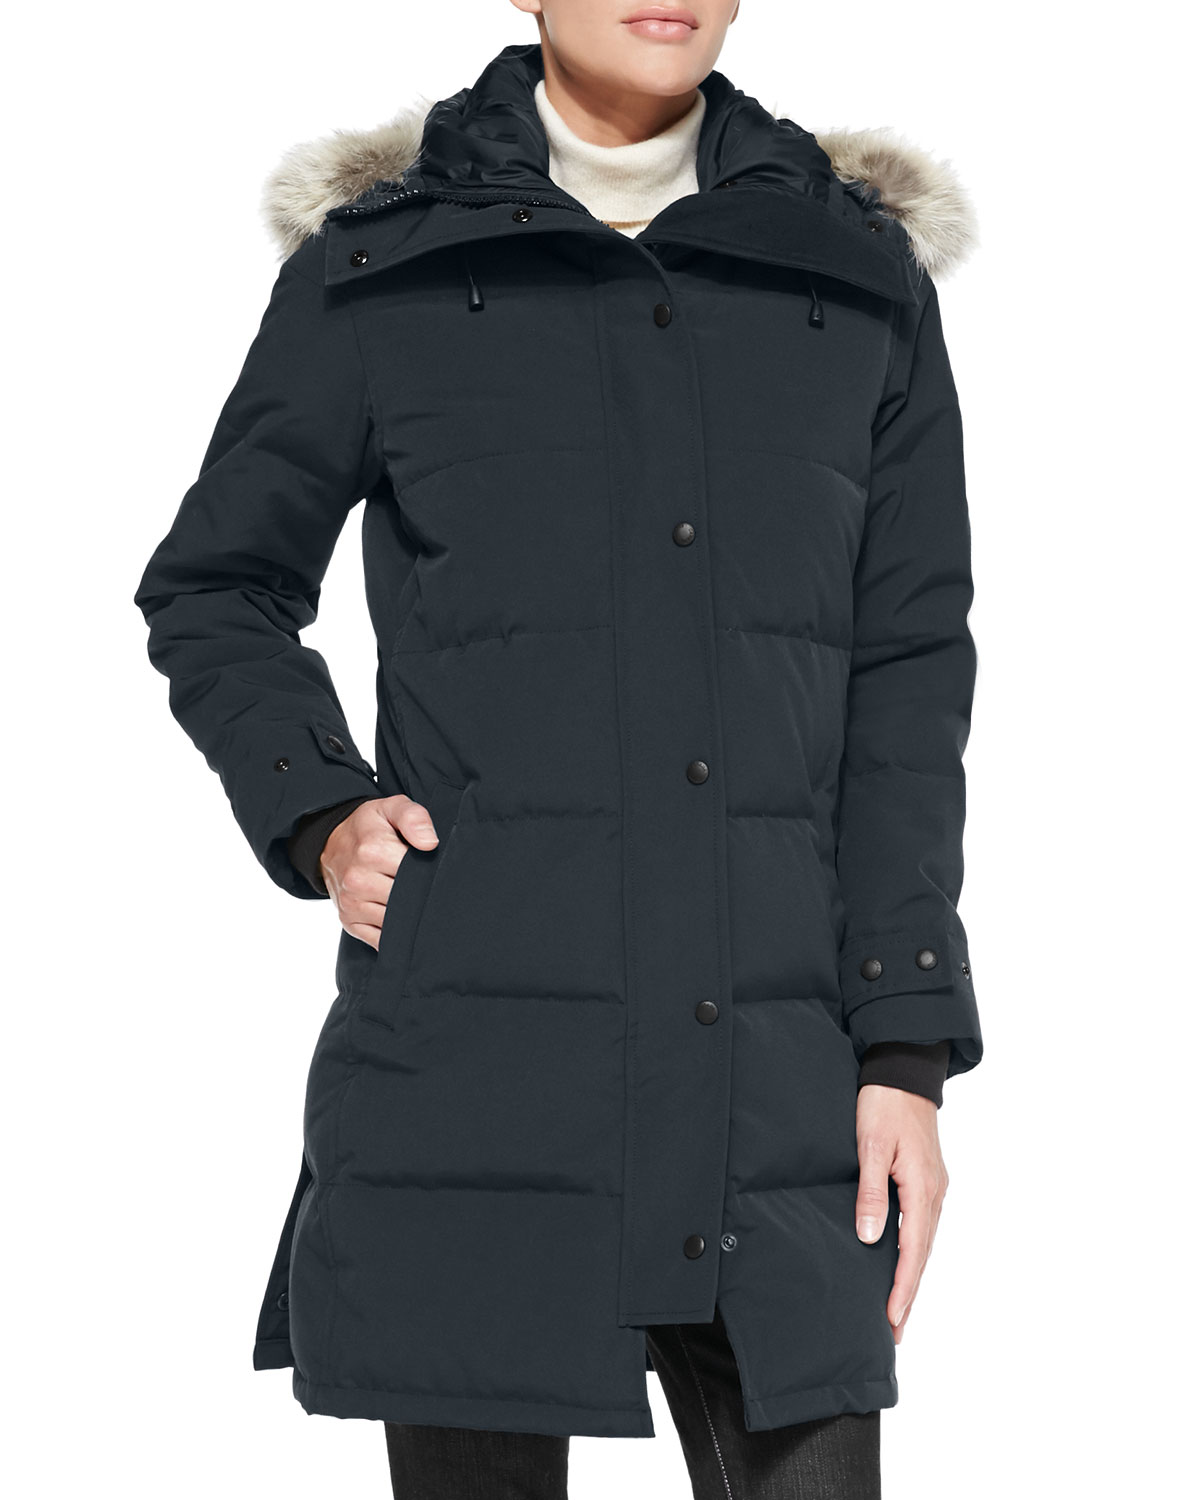 Canada Goose Coats Shelburne Parka Coat with Fur Hood